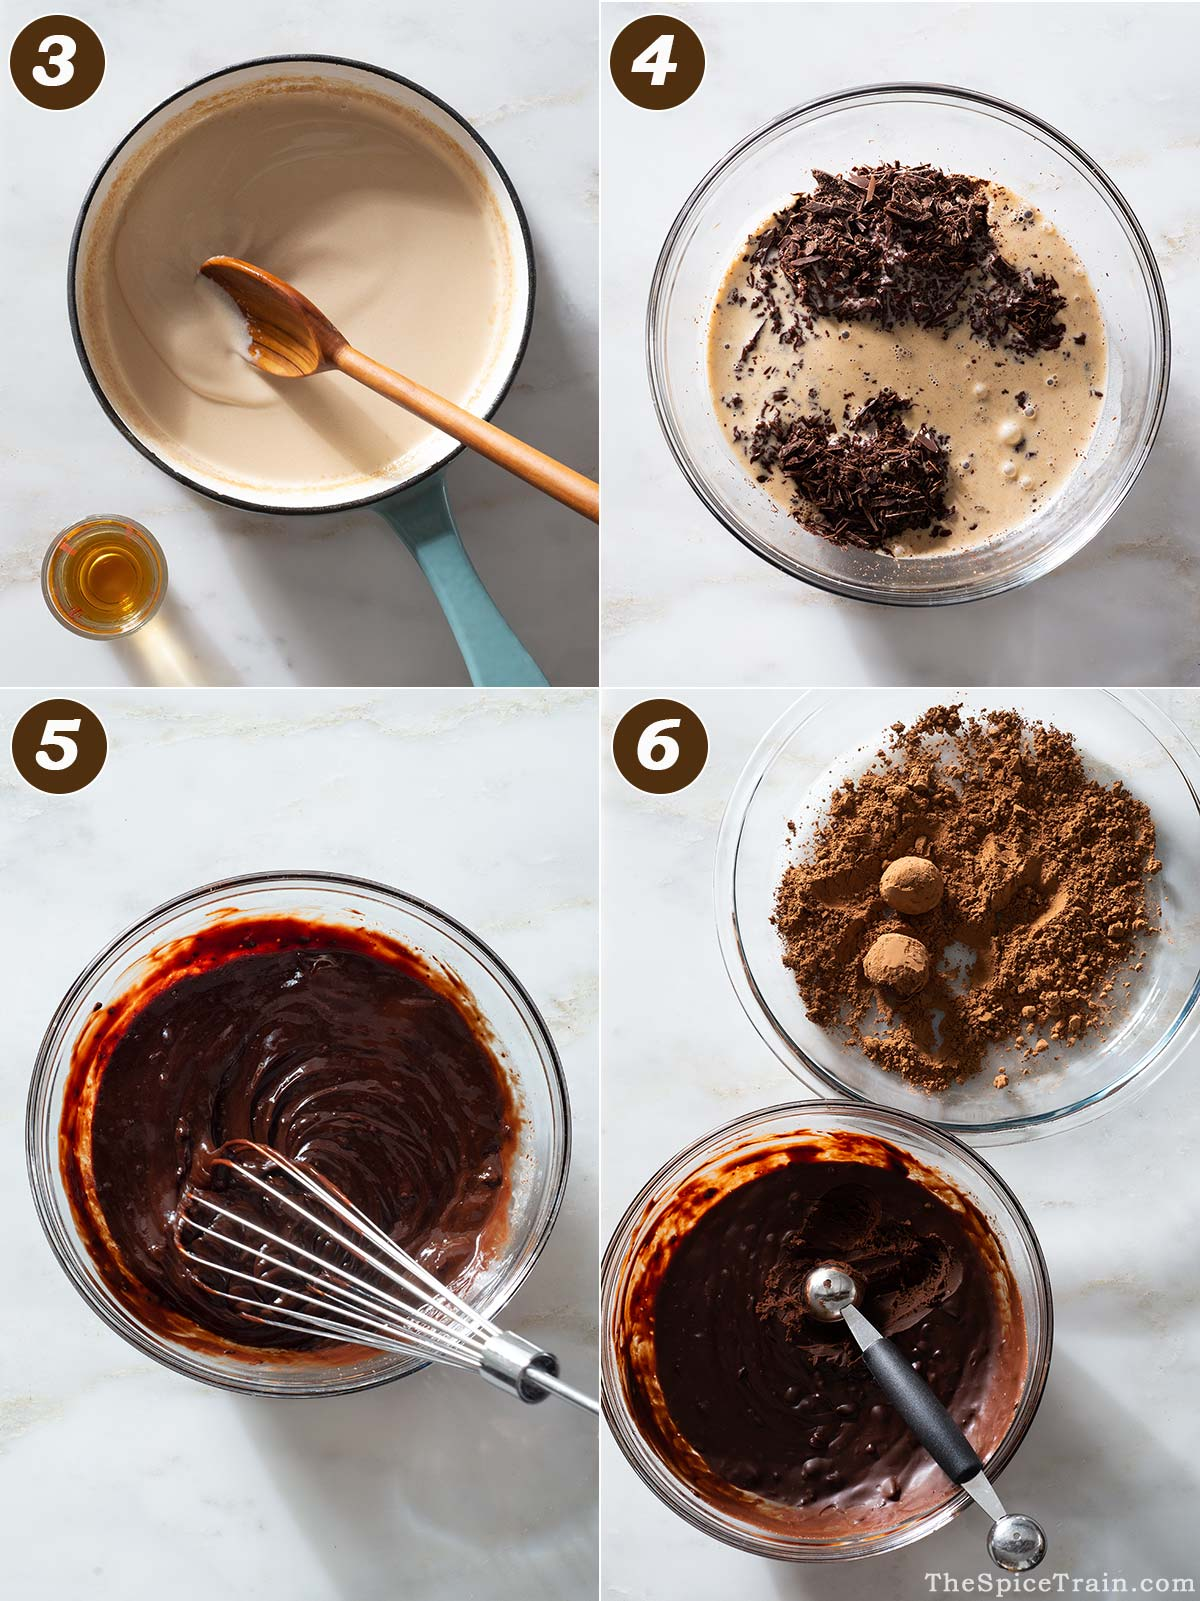 Chocolate ganache and truffles being prepared in four steps.